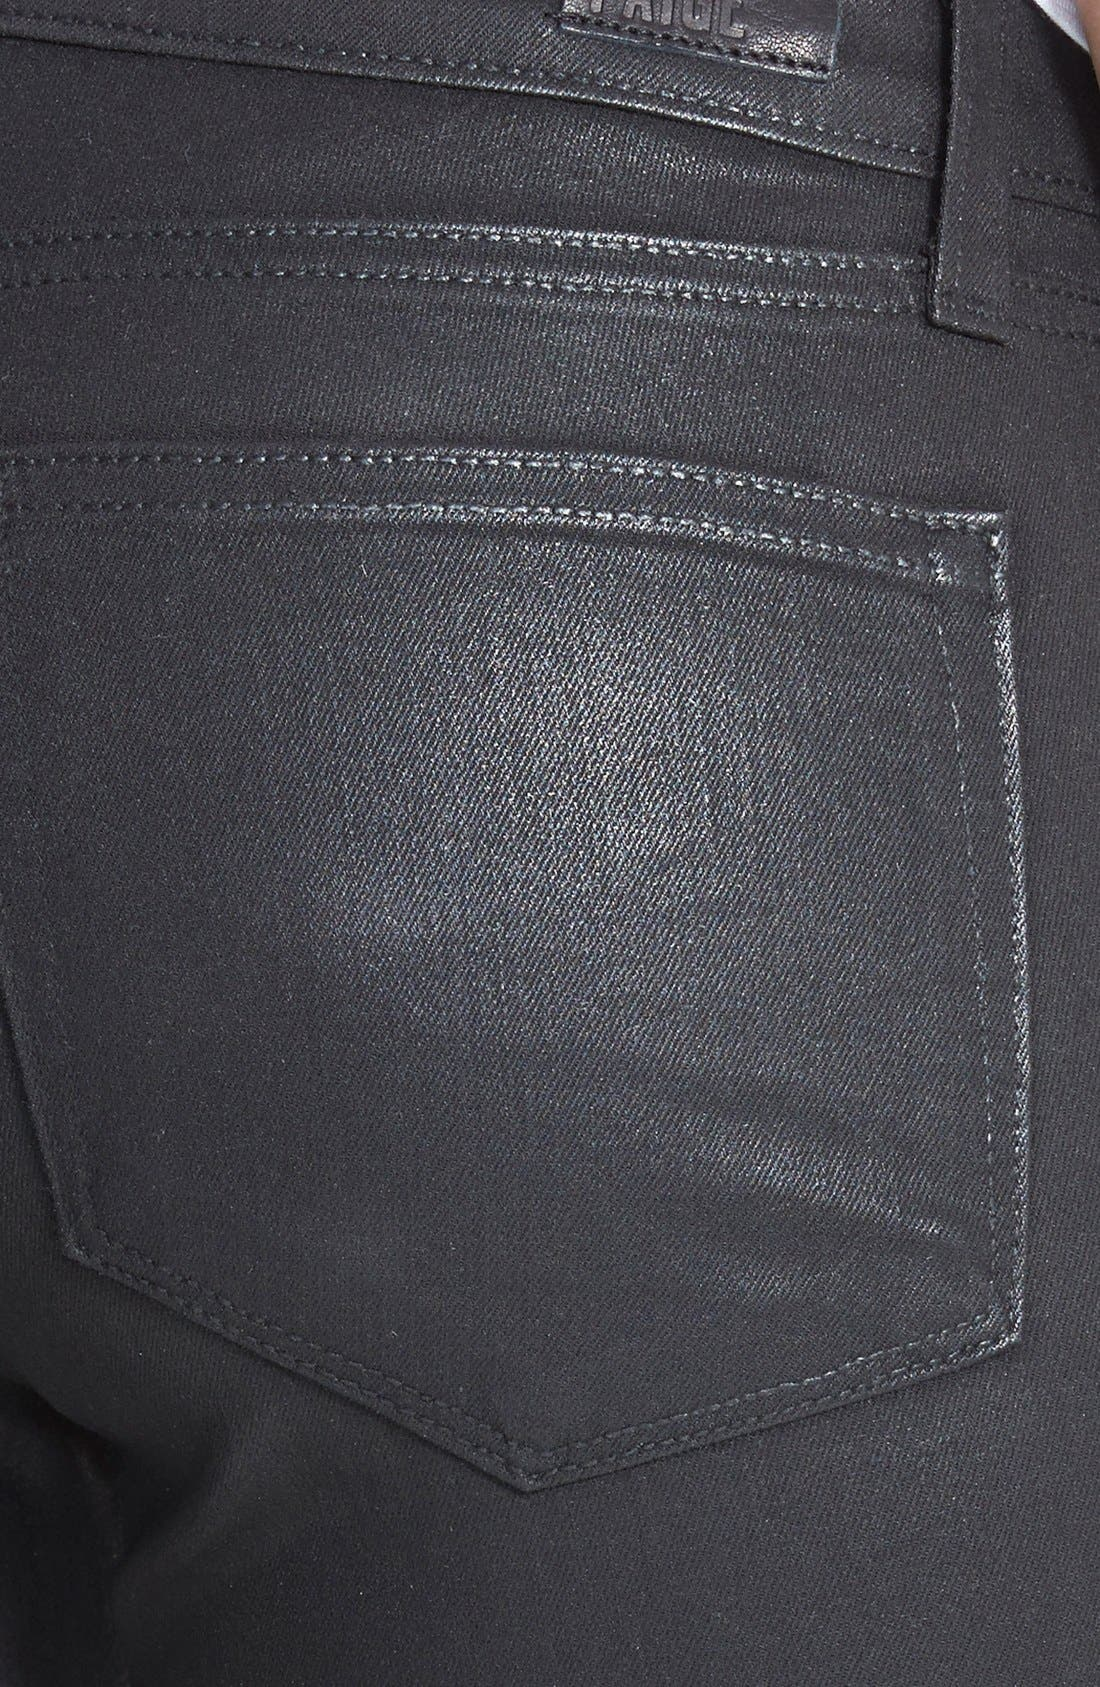 'Edgemont' Coated Ultra Skinny Jeans,                             Alternate thumbnail 3, color,                             Black Silk